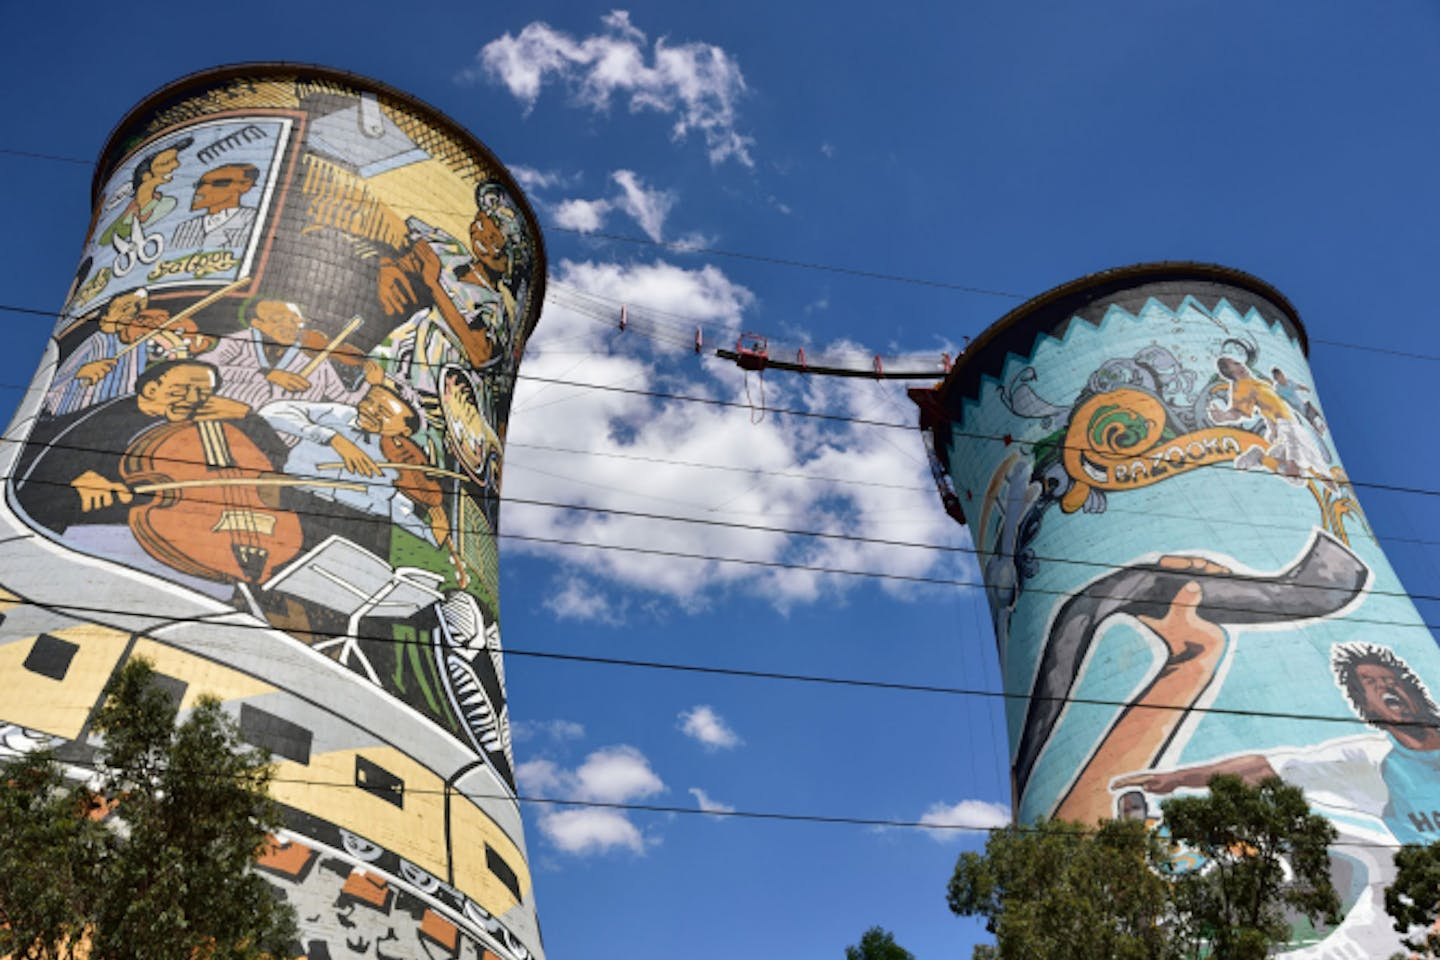 the cooling towers of the retired Orlando coal plant in South Africa. The towers now display large murals and advertisements as well as being used as a platform for bungee and BASE jumping